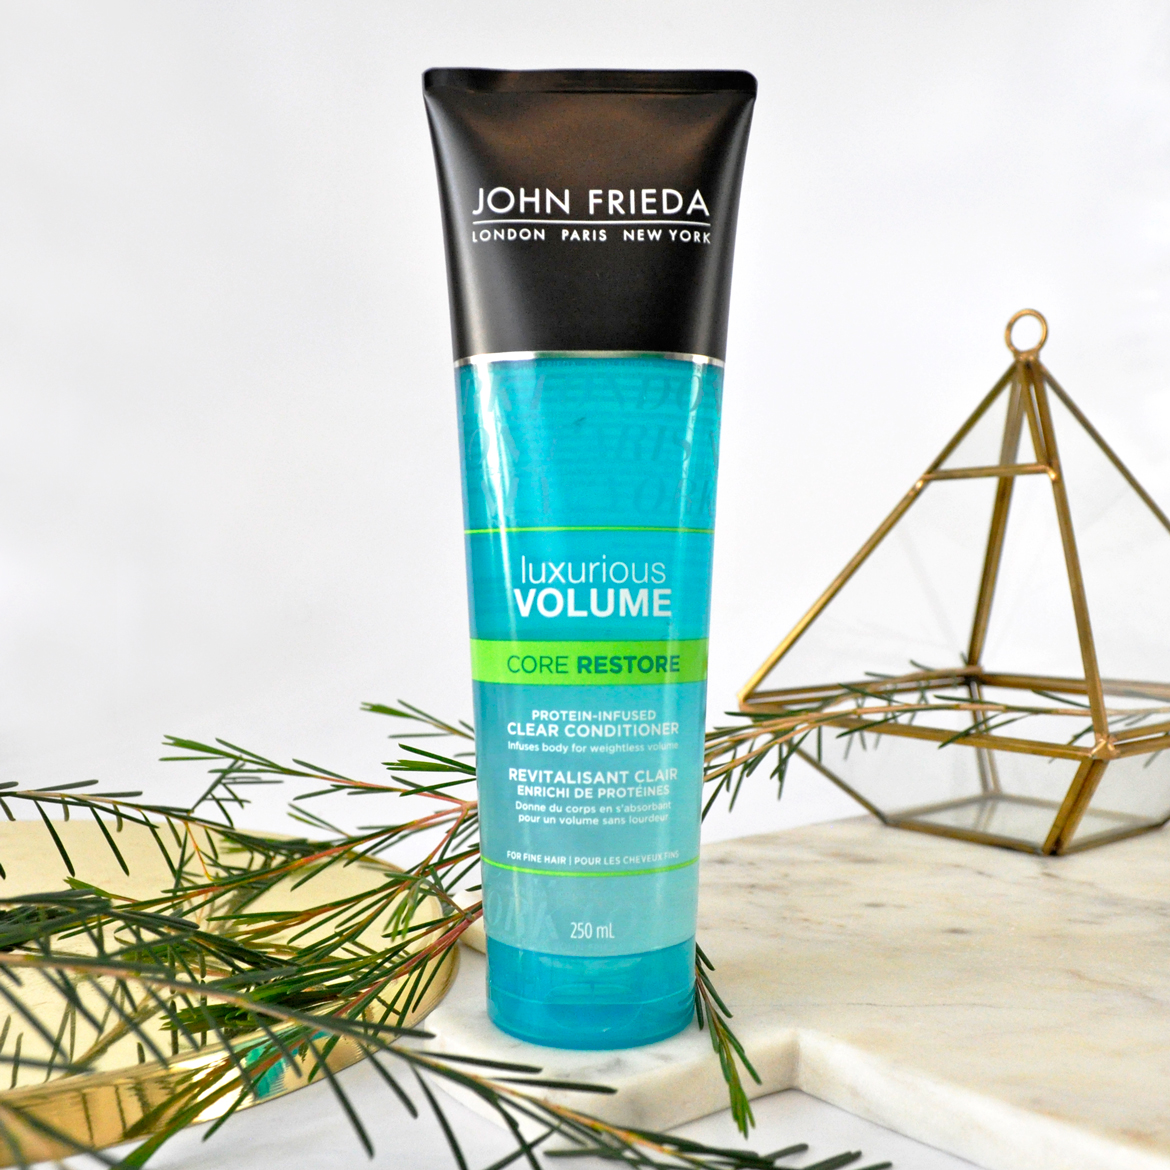 John Freida Luxurious Volume Core Restore Protein-Infused Clear Conditioner